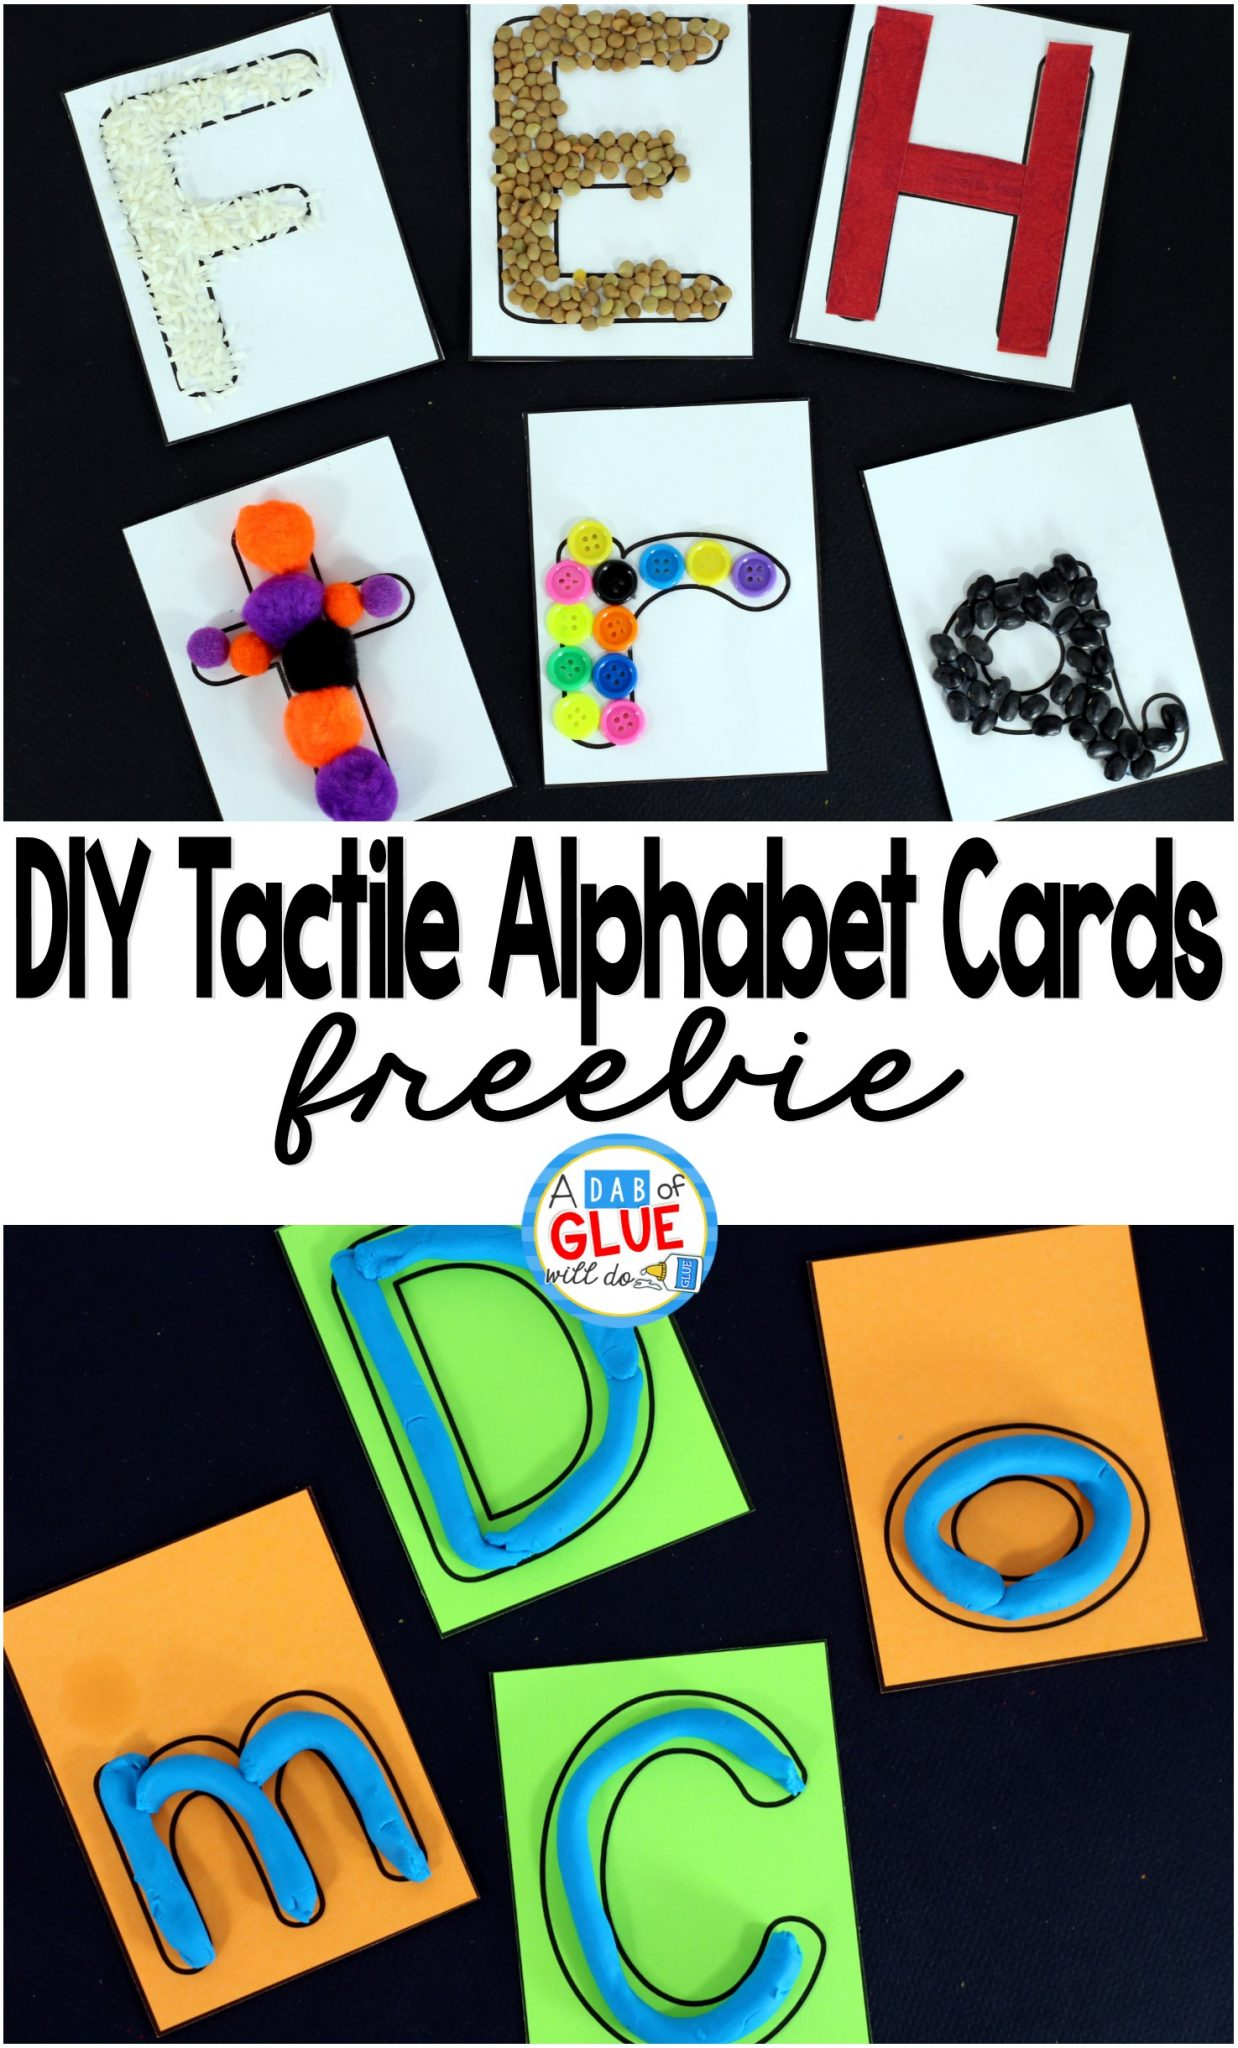 DIY Tactile Alphabet Cards